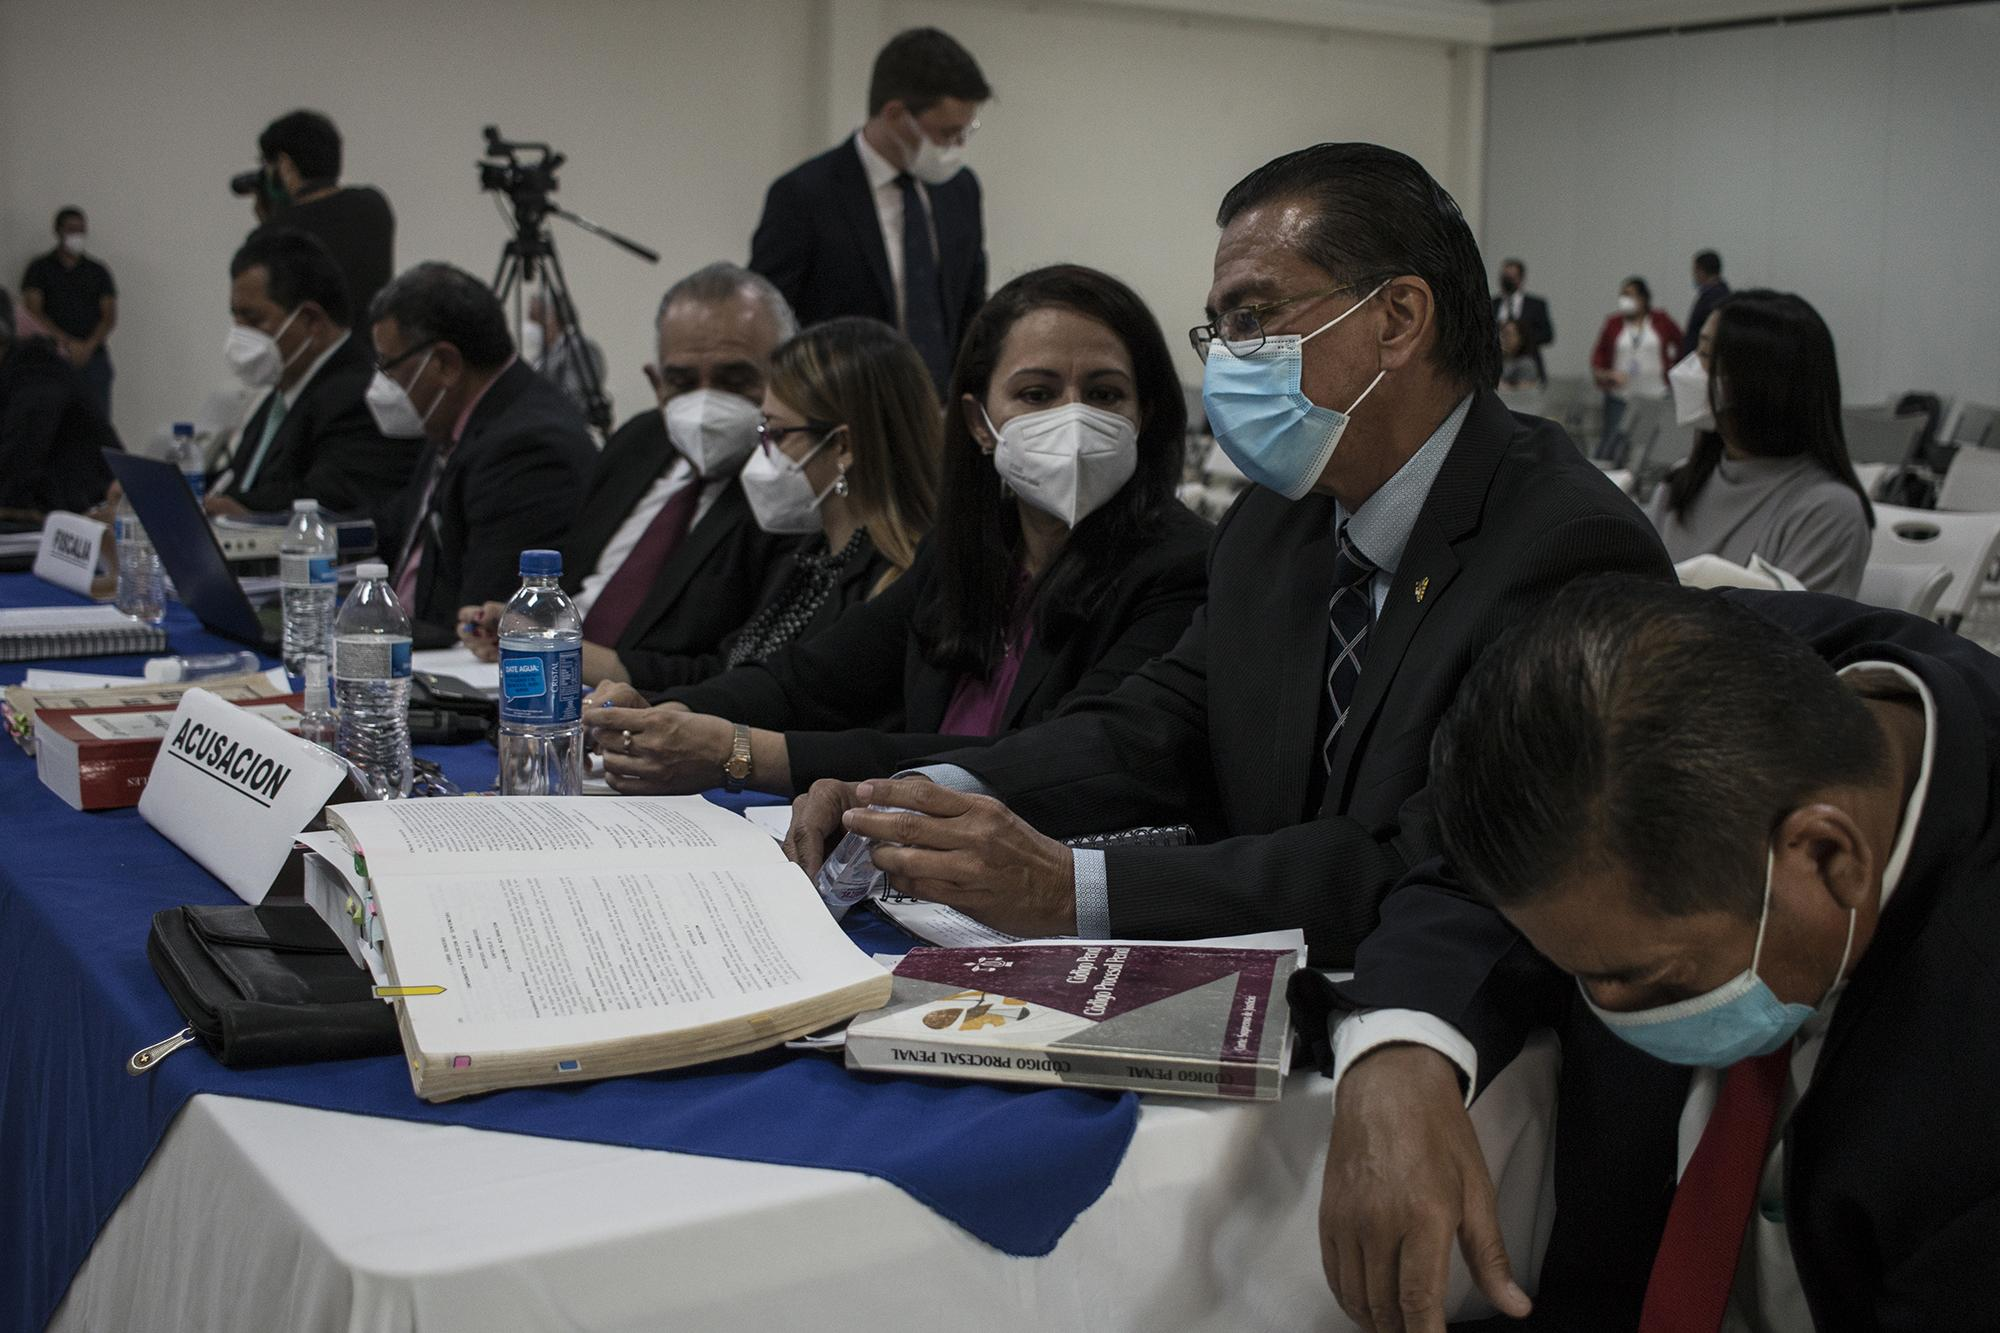 Plaintiffs in the trial of the alleged military perpetrators of the El Mozote massacre converse before the testimony of U.S. expert witness Terry Karl. Photo: Víctor Peña/El Faro